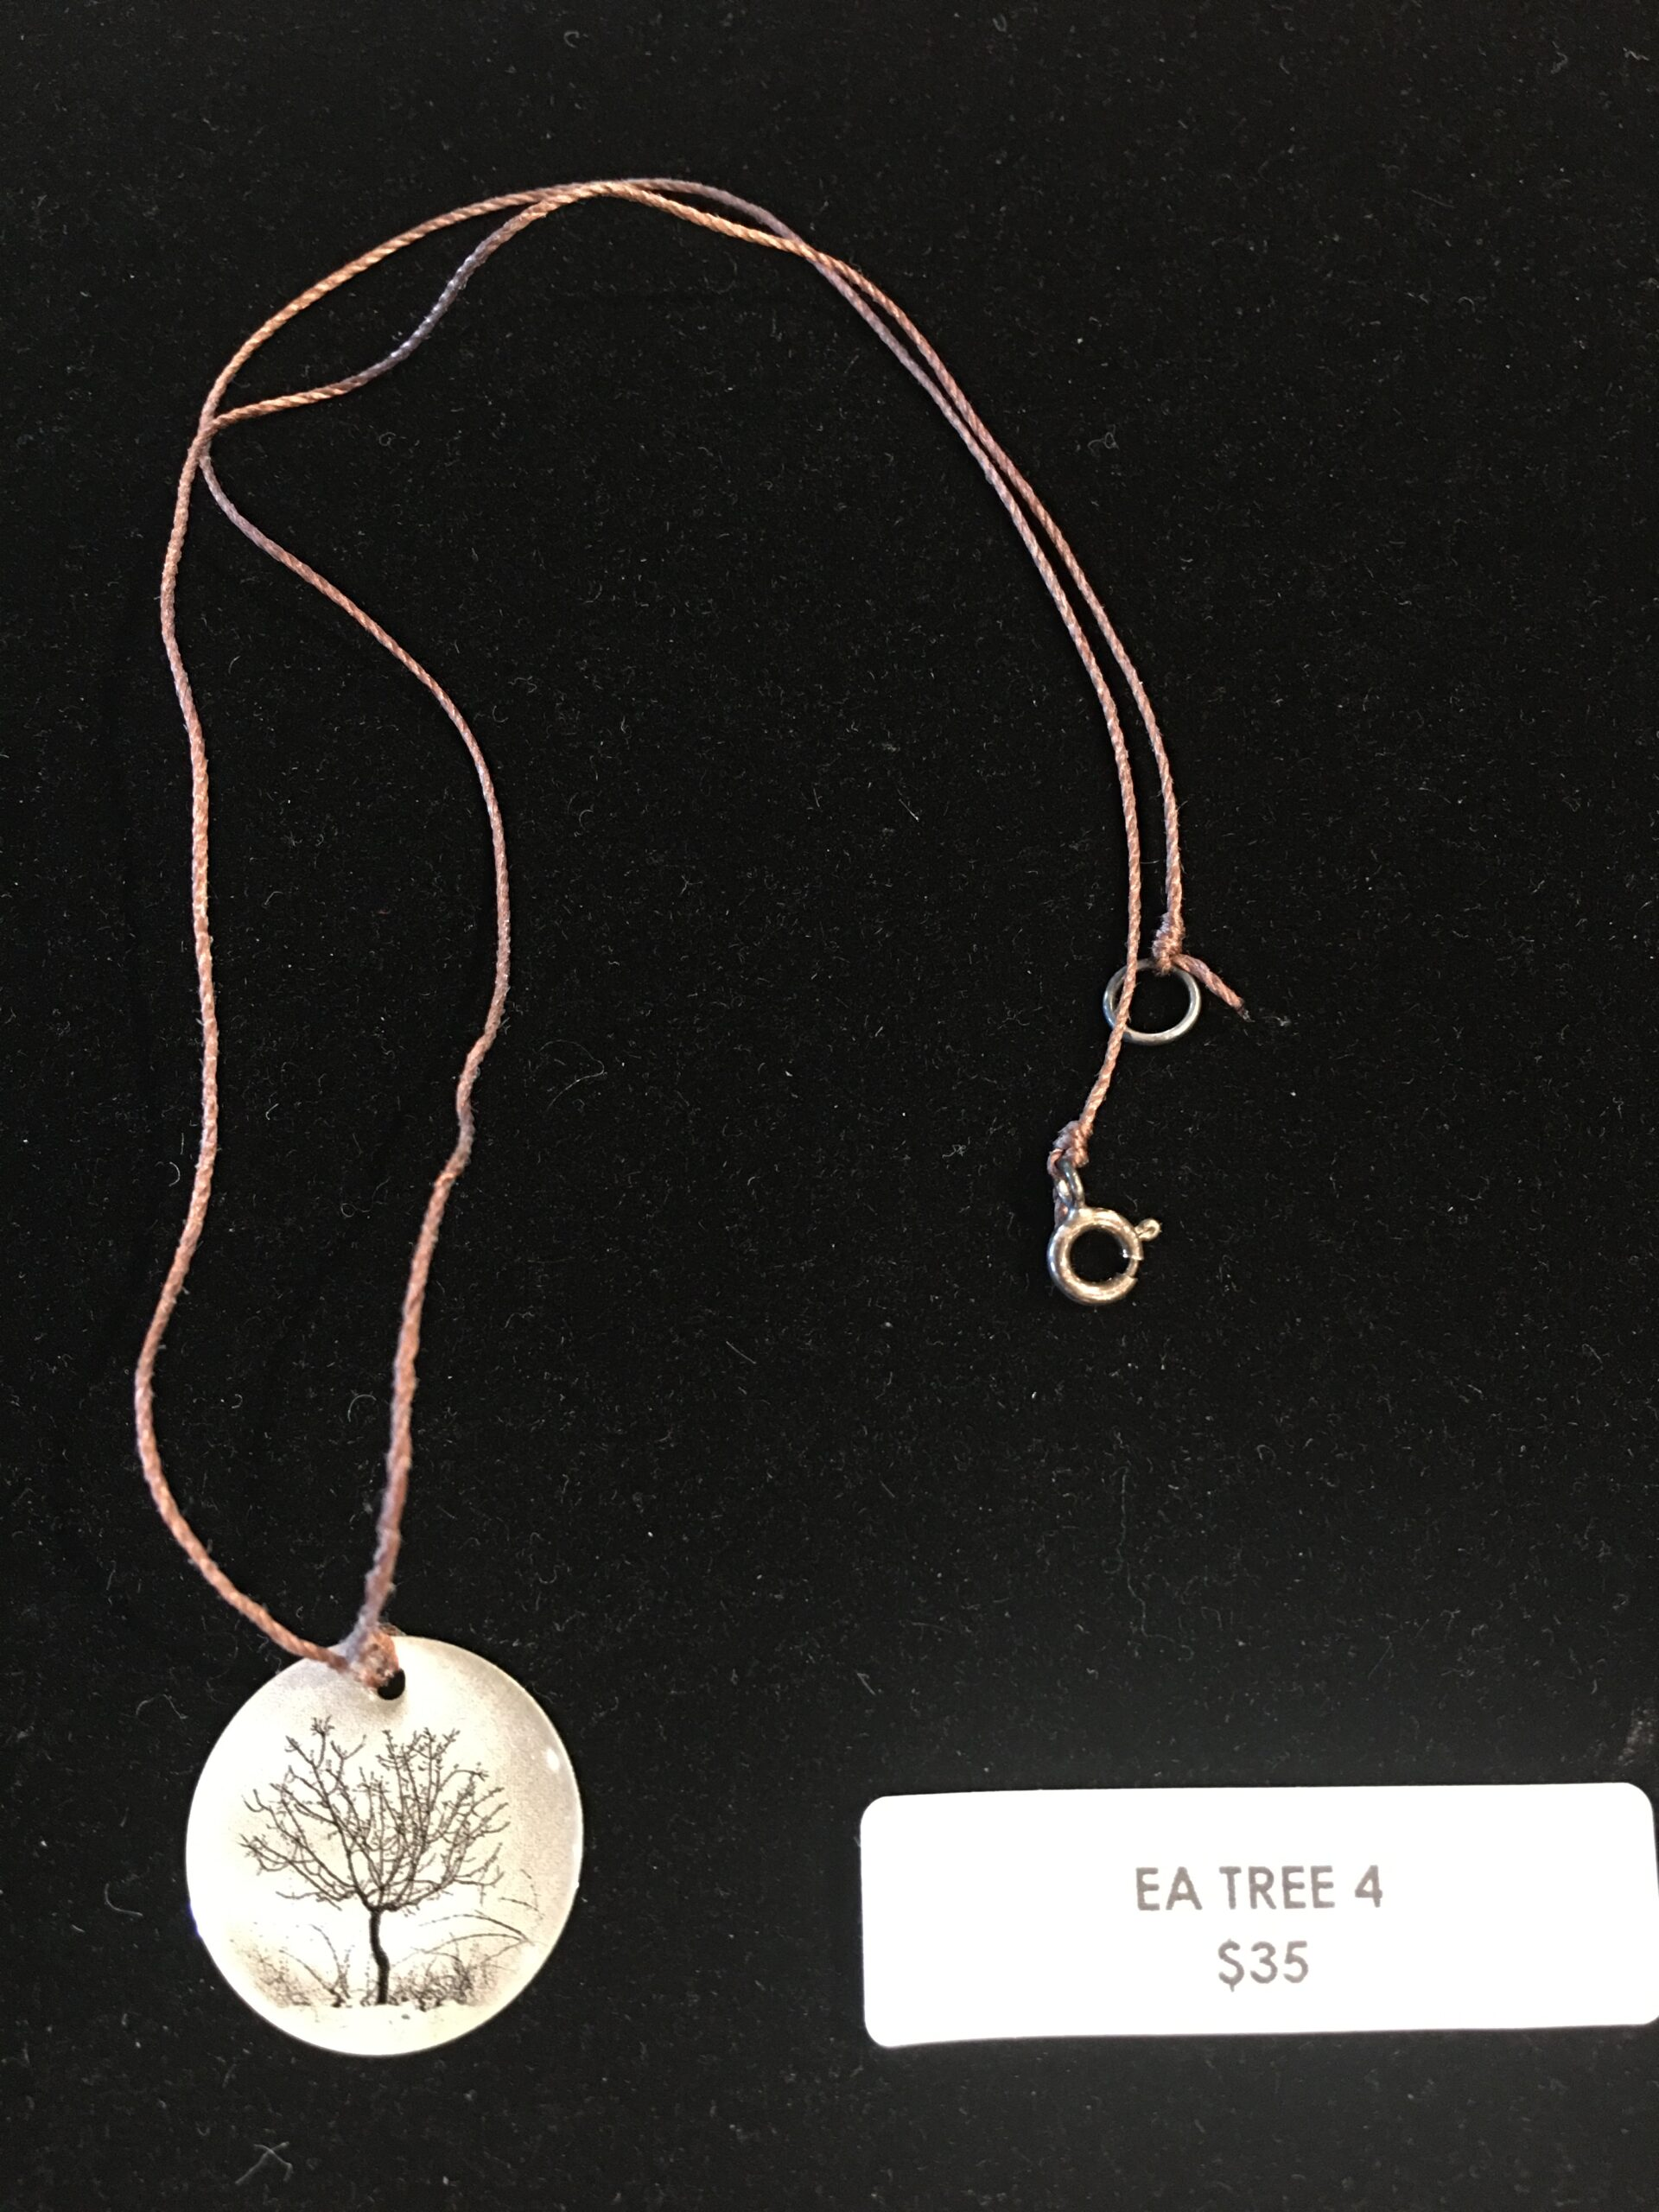 EA-necklace-tree4-1139-scaled.jpg